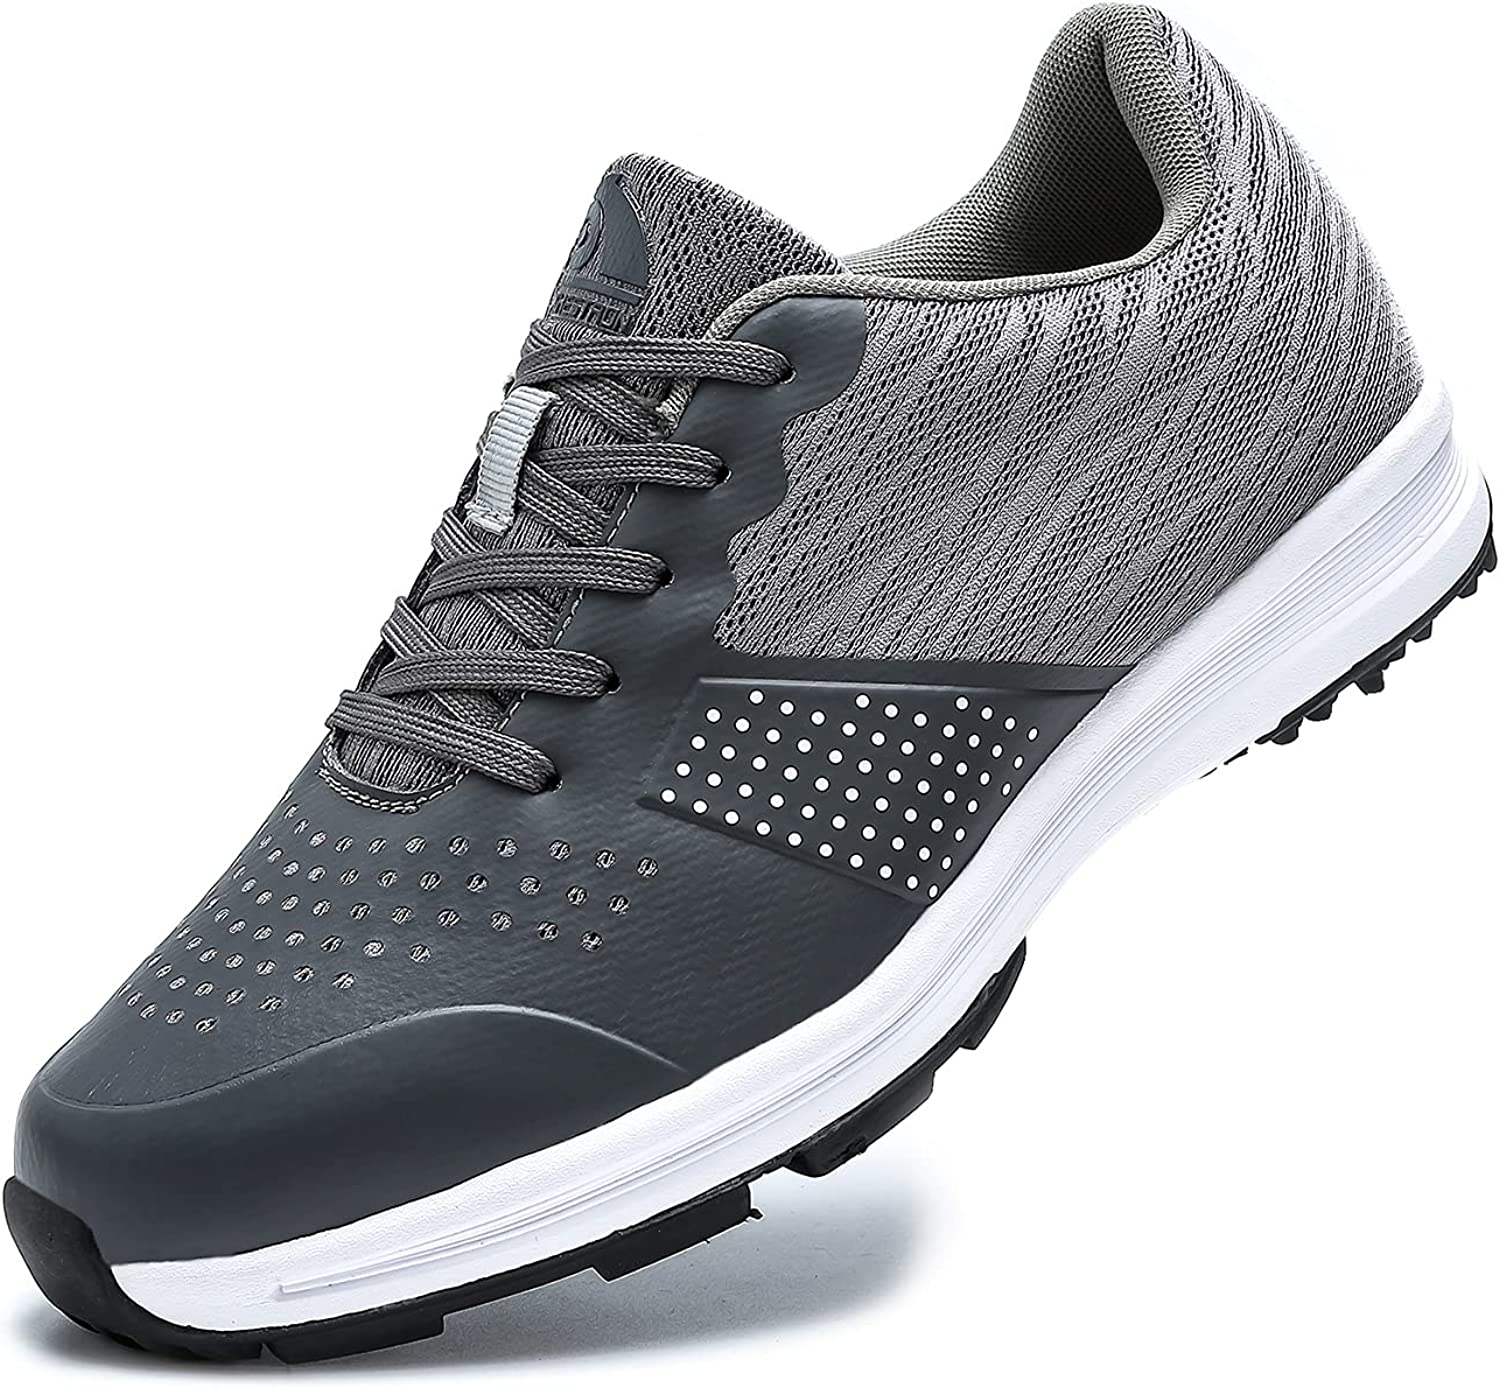 Thestron Cheap mail order sales Men's Golf Complete Free Shipping Shoes Sneakers Sports Training Walking